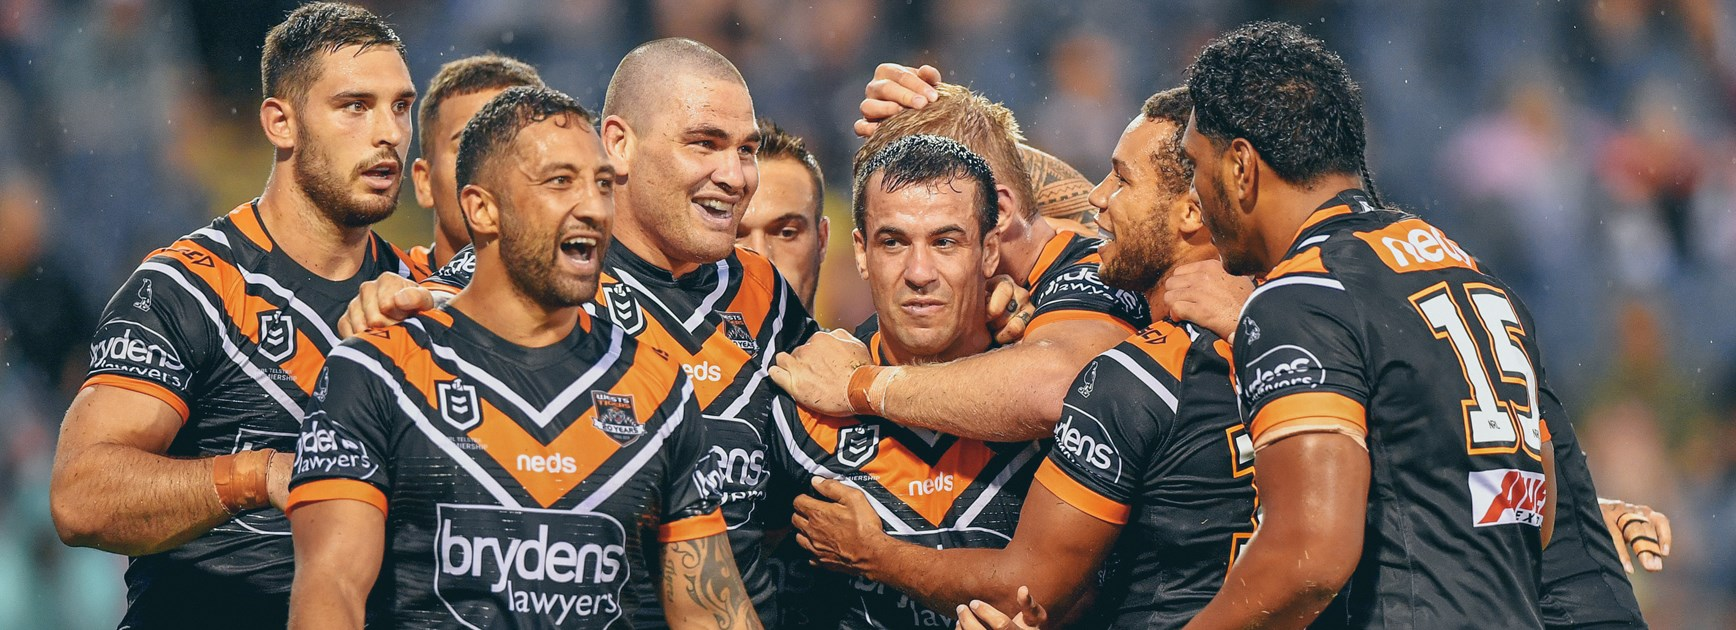 Wests Tigers demolish Warriors at Campbelltown